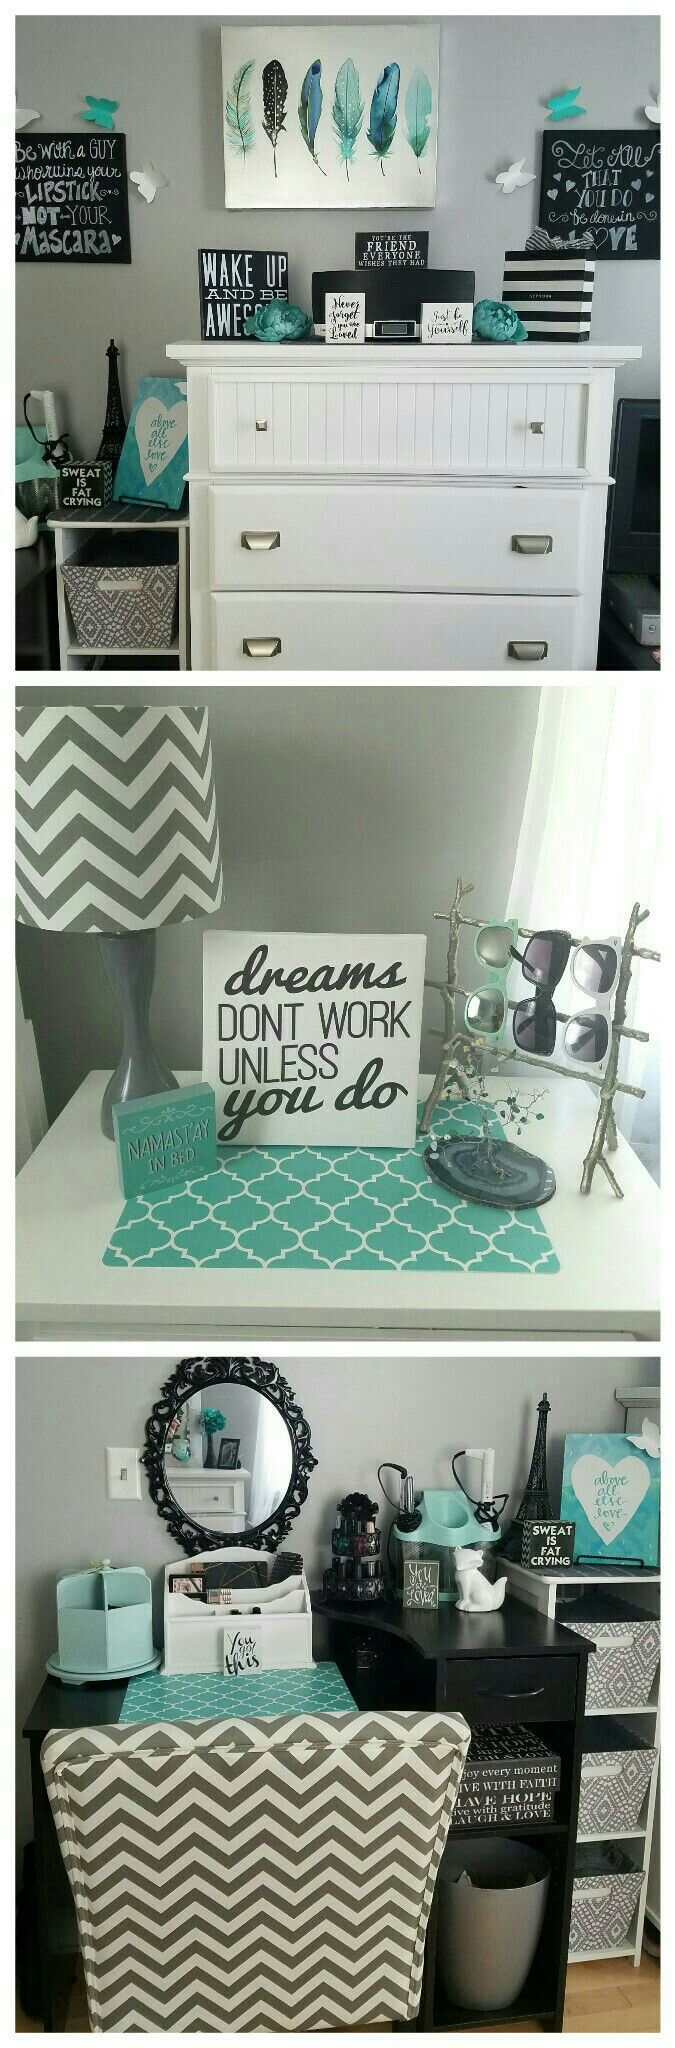 Black and white and turquoise bathroom ideas - Grey And Teal Teen Girl Bedroom Ideas